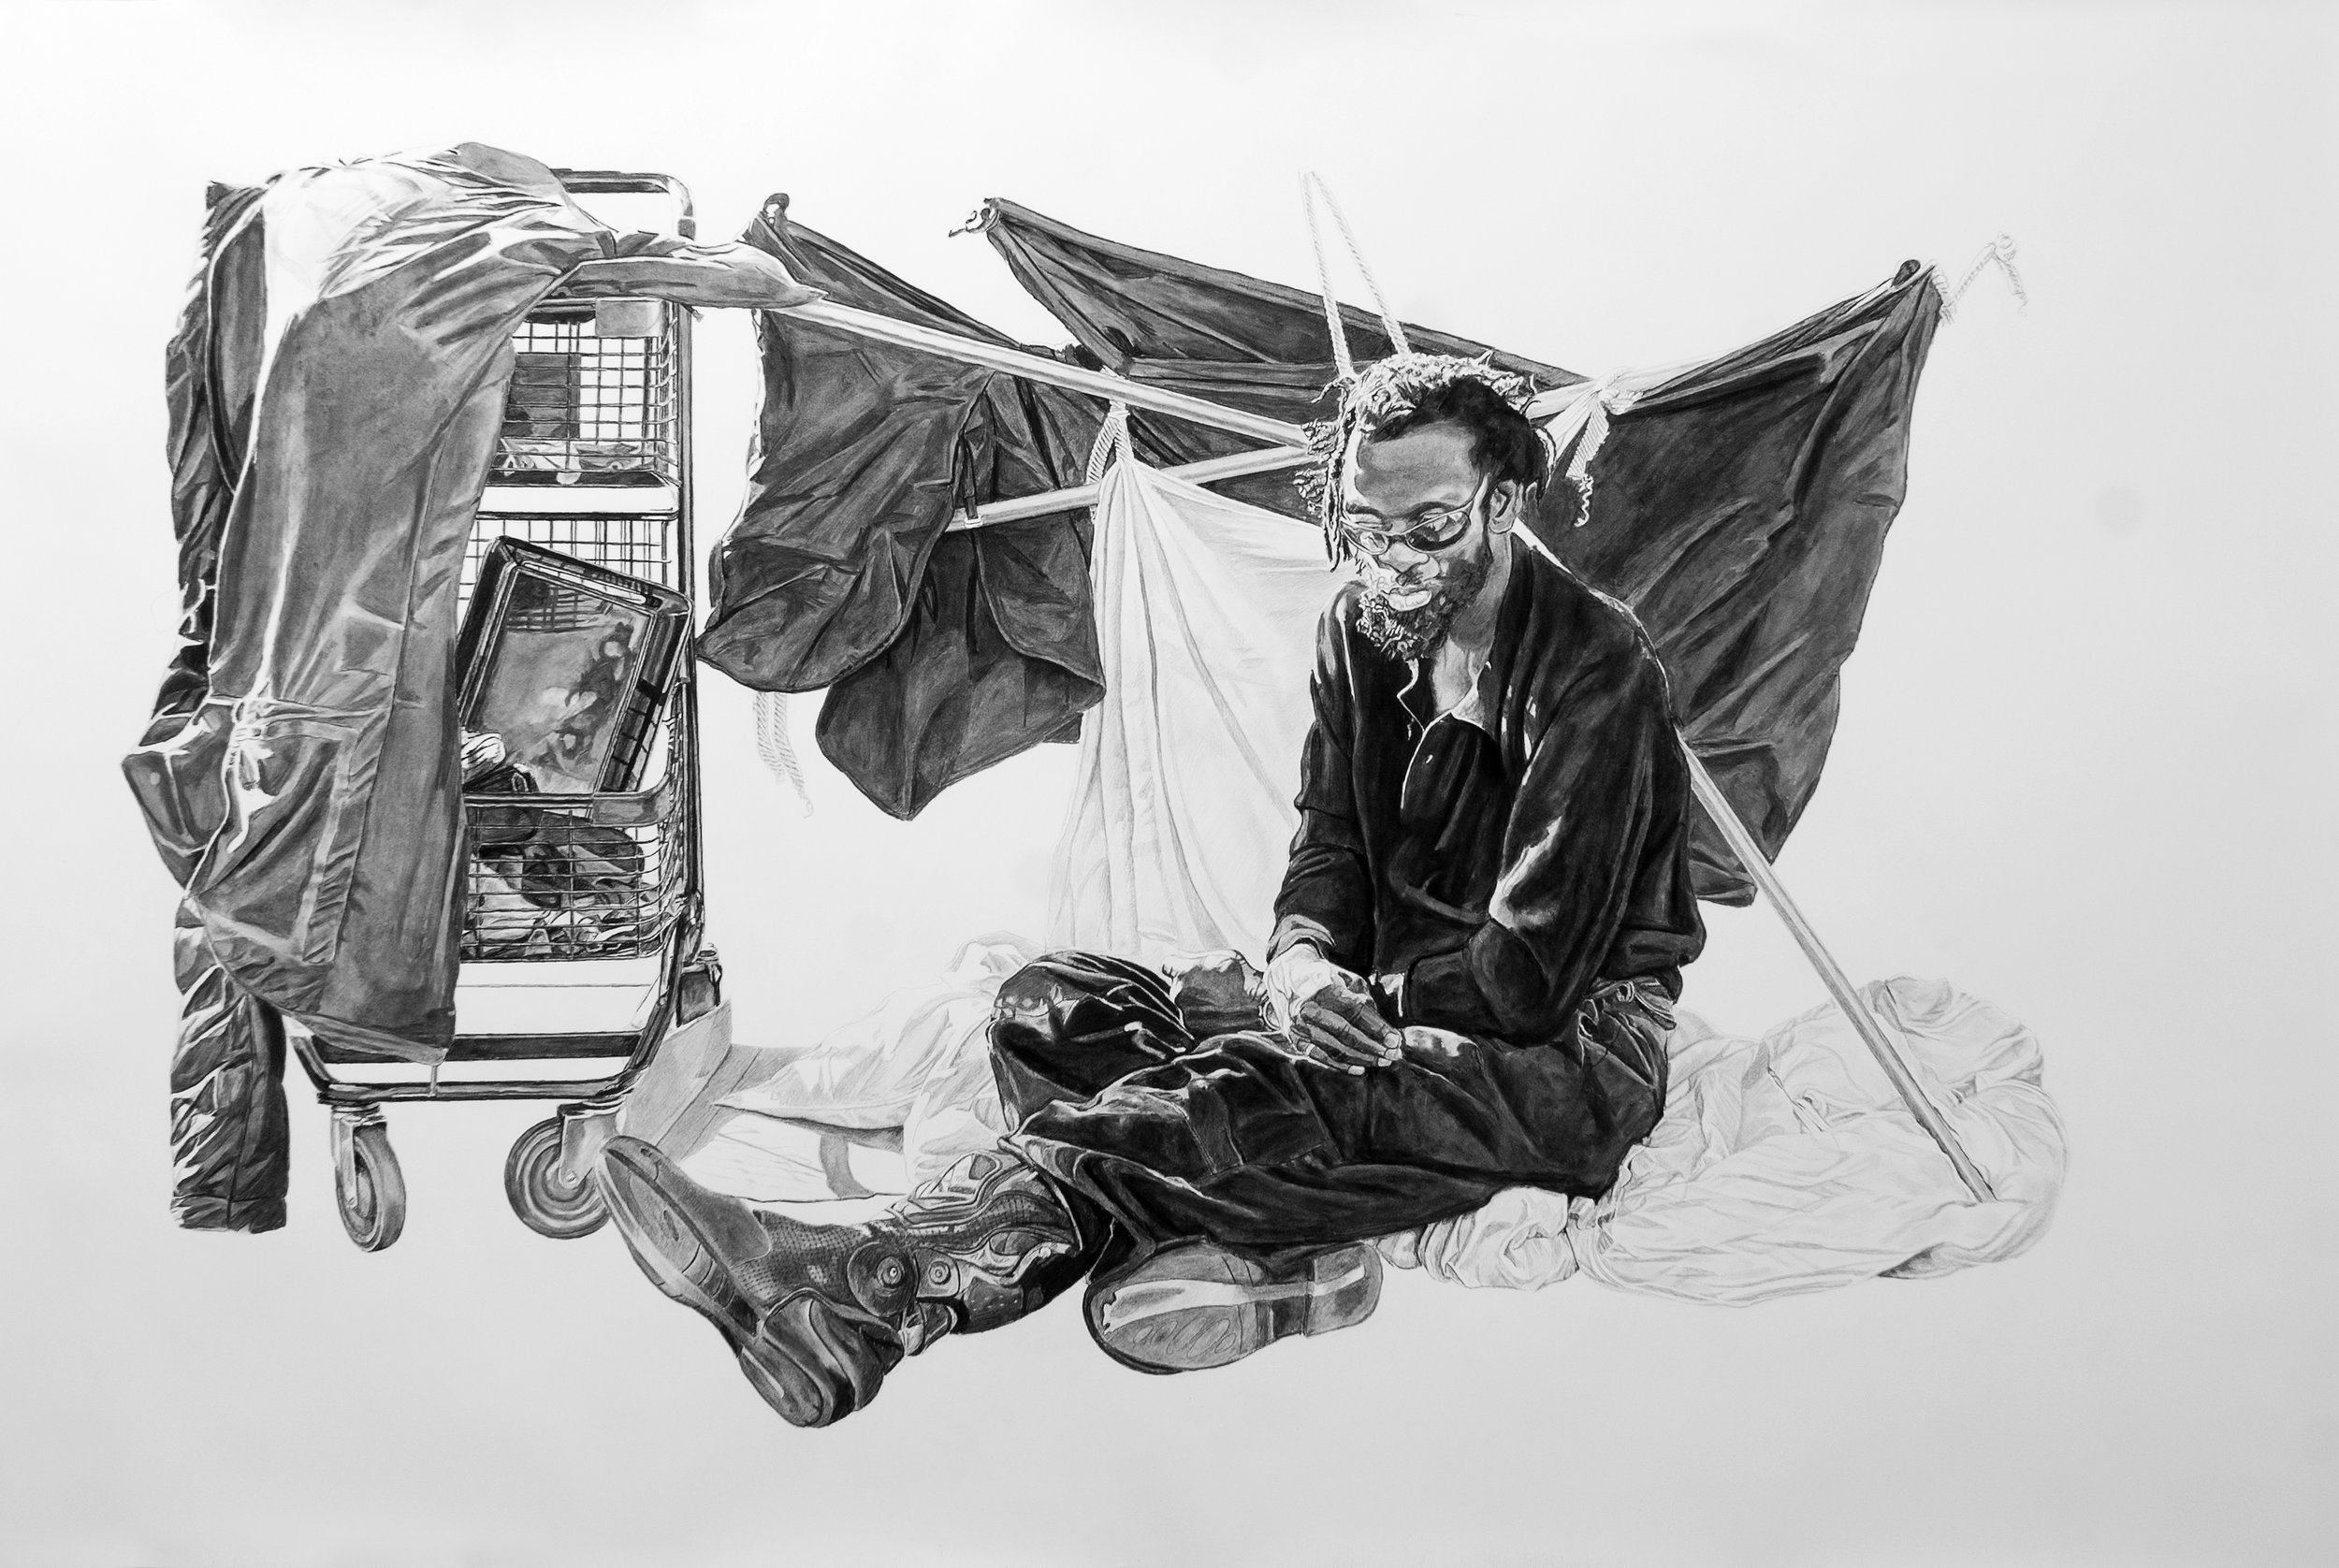 Henry (Nate) with a Structure, Charcoal & Graphite on Paper,56x80 inches